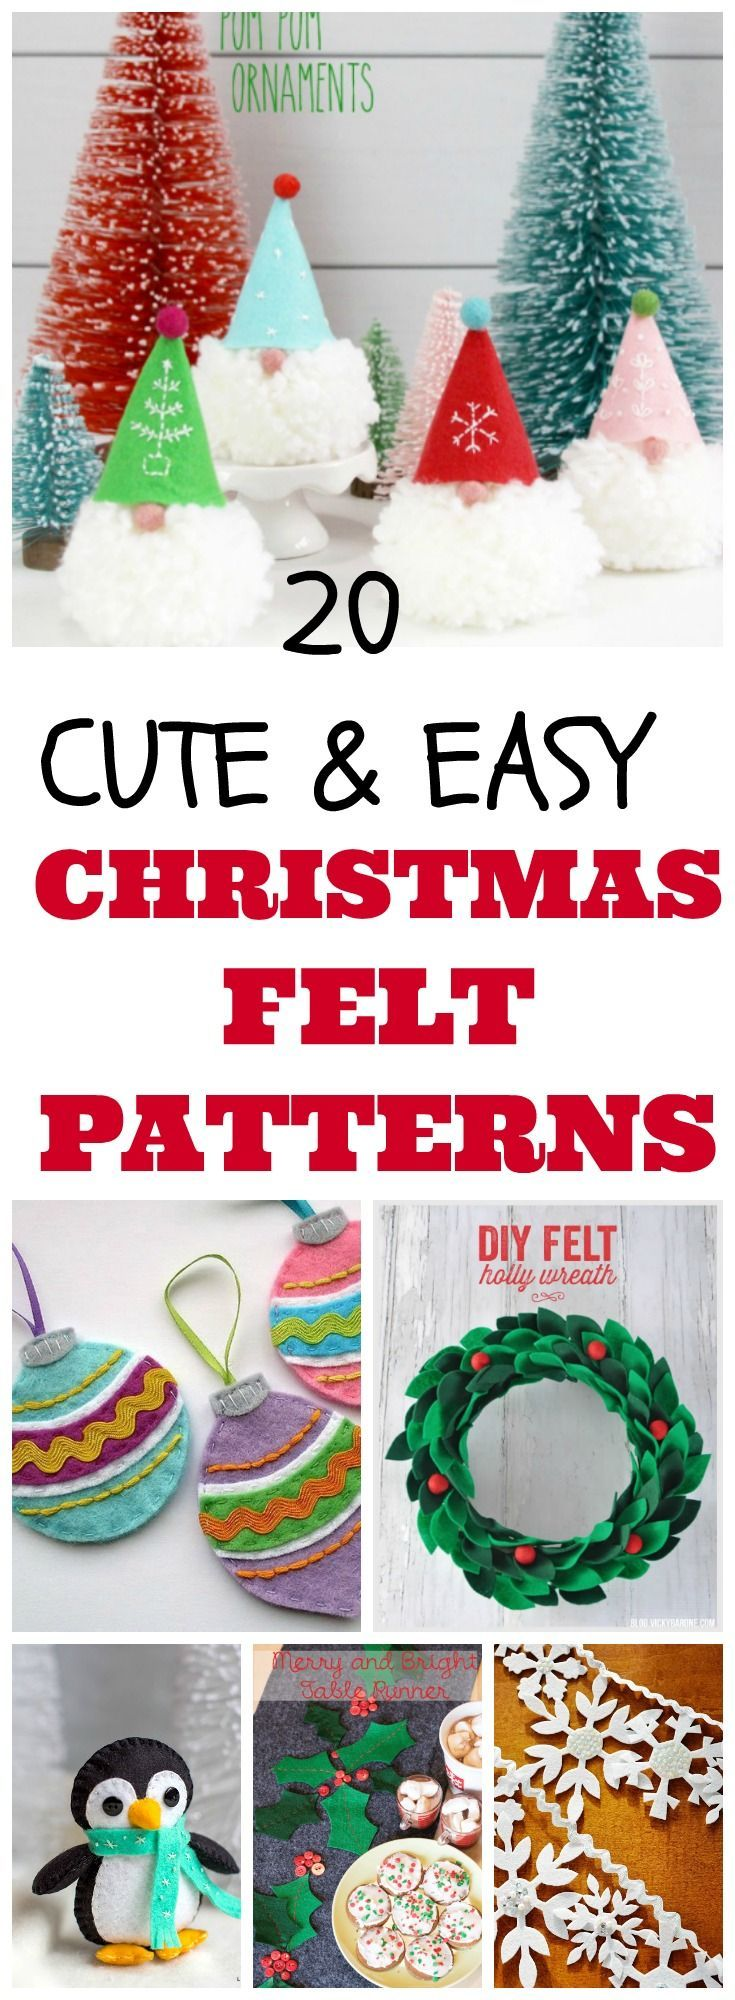 20 DIY Christmas Felt Patterns For Holiday Crafts Gift Ideas And Winter Decor